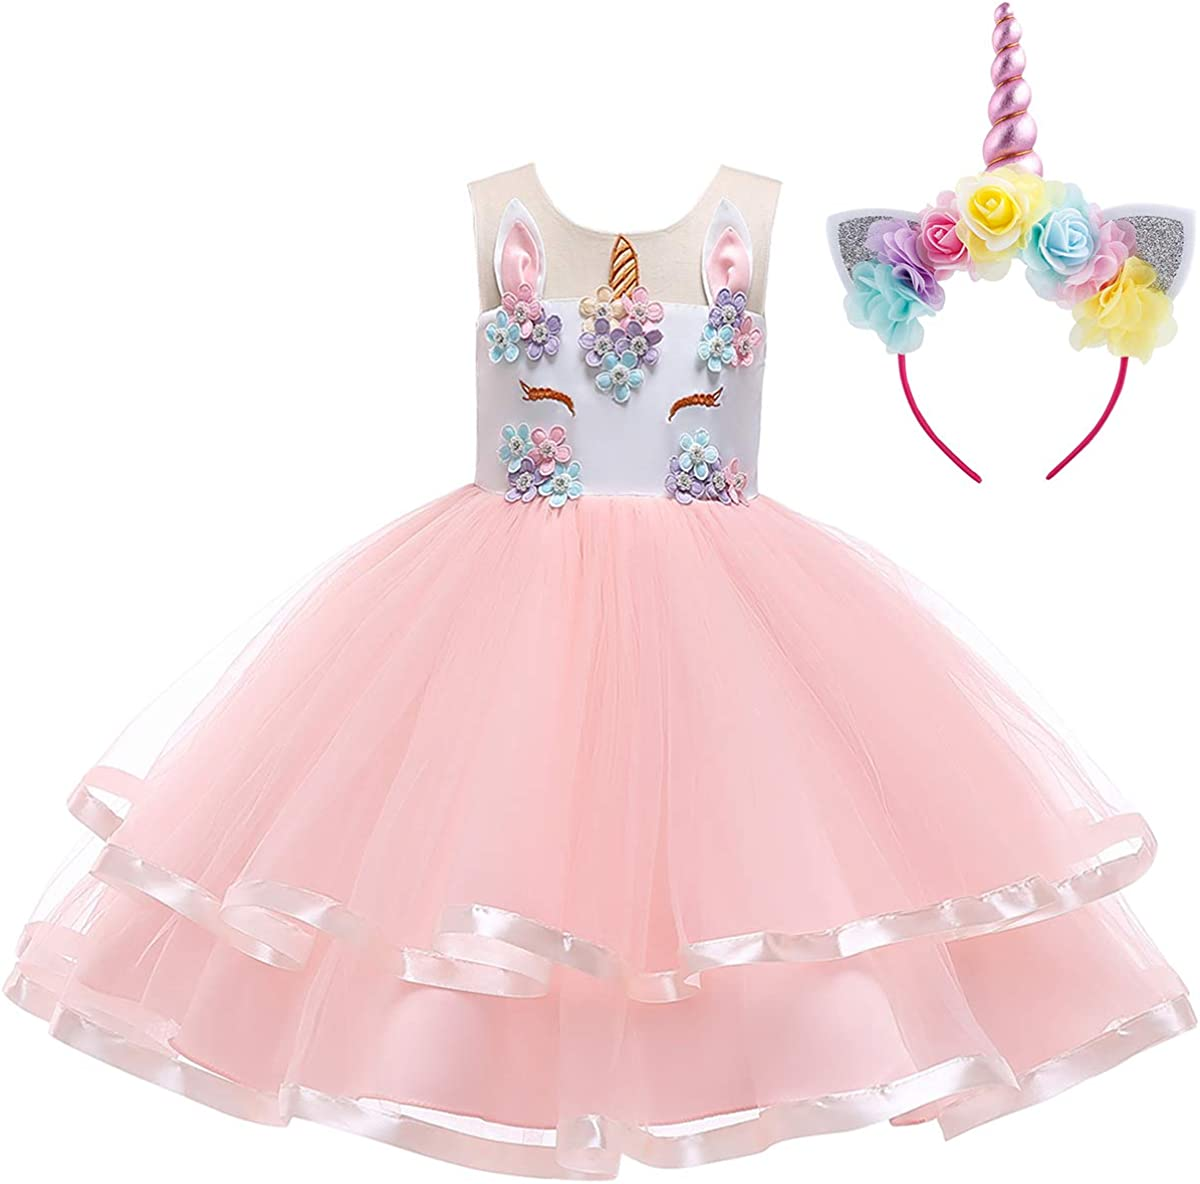 Flower Girls Dress Unicorn Costume Kids Princess Pageant Cosplay Party Tutu Gown